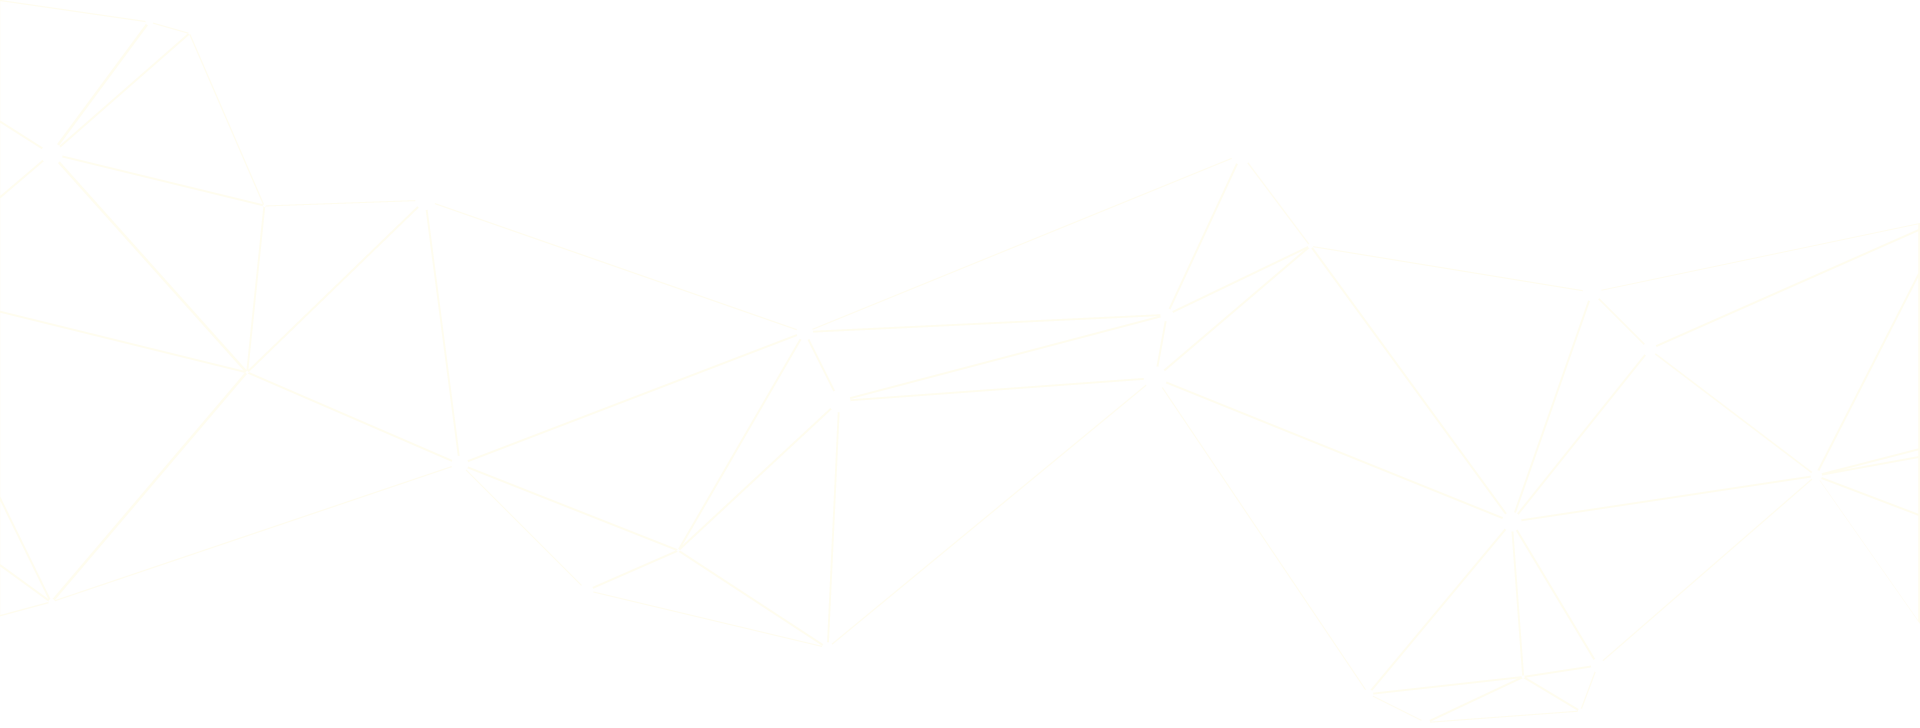 Particle overlay png. Wht large the health